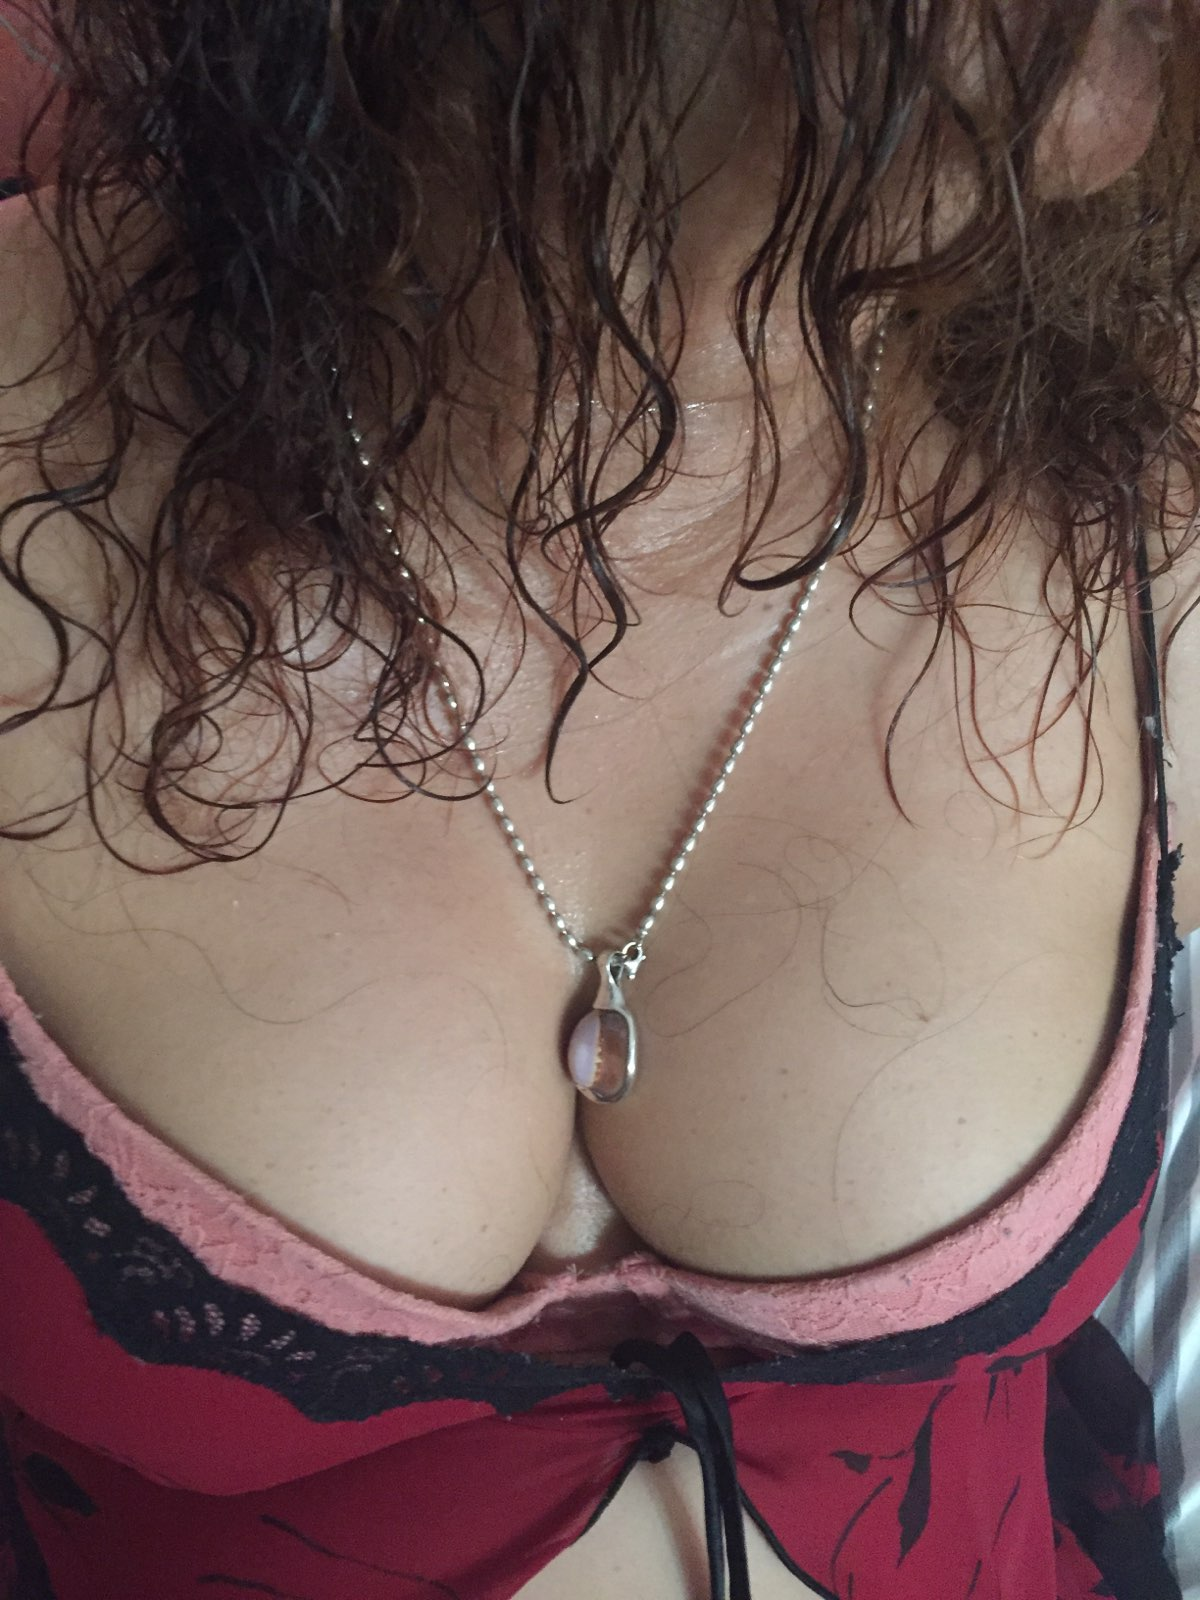 Hot and horny ploynesian lady in Parramatta ready to cater for all your needs